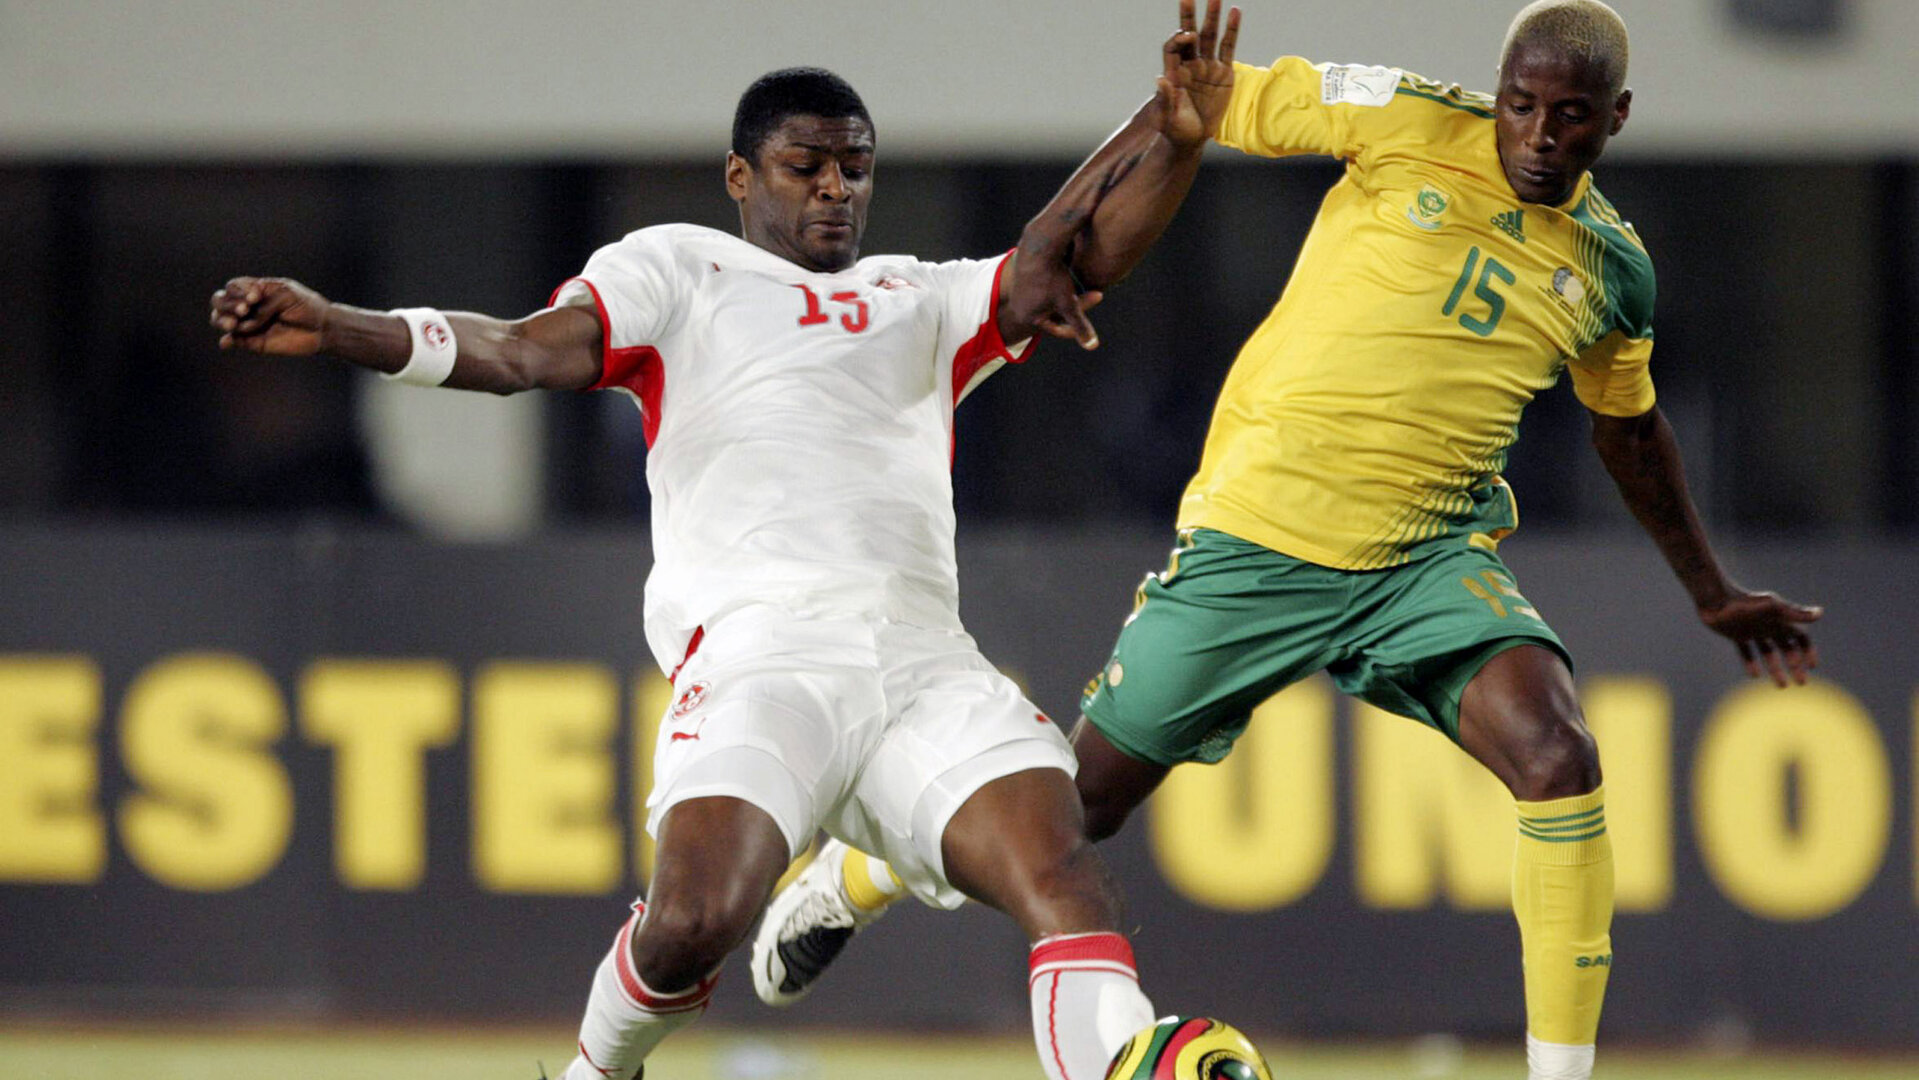 TAMALE, GHANA - JANUARY 27:  Radhi Jaidi and Sibusiso Zuma during the Group D African Cup Of Nations match between South Africa and Tunisia held at the Tamale Stadium on January 27, 2008 in Tamale, Ghana. (Photo by Lefty Shivambu/Gallo Images/Getty Images)